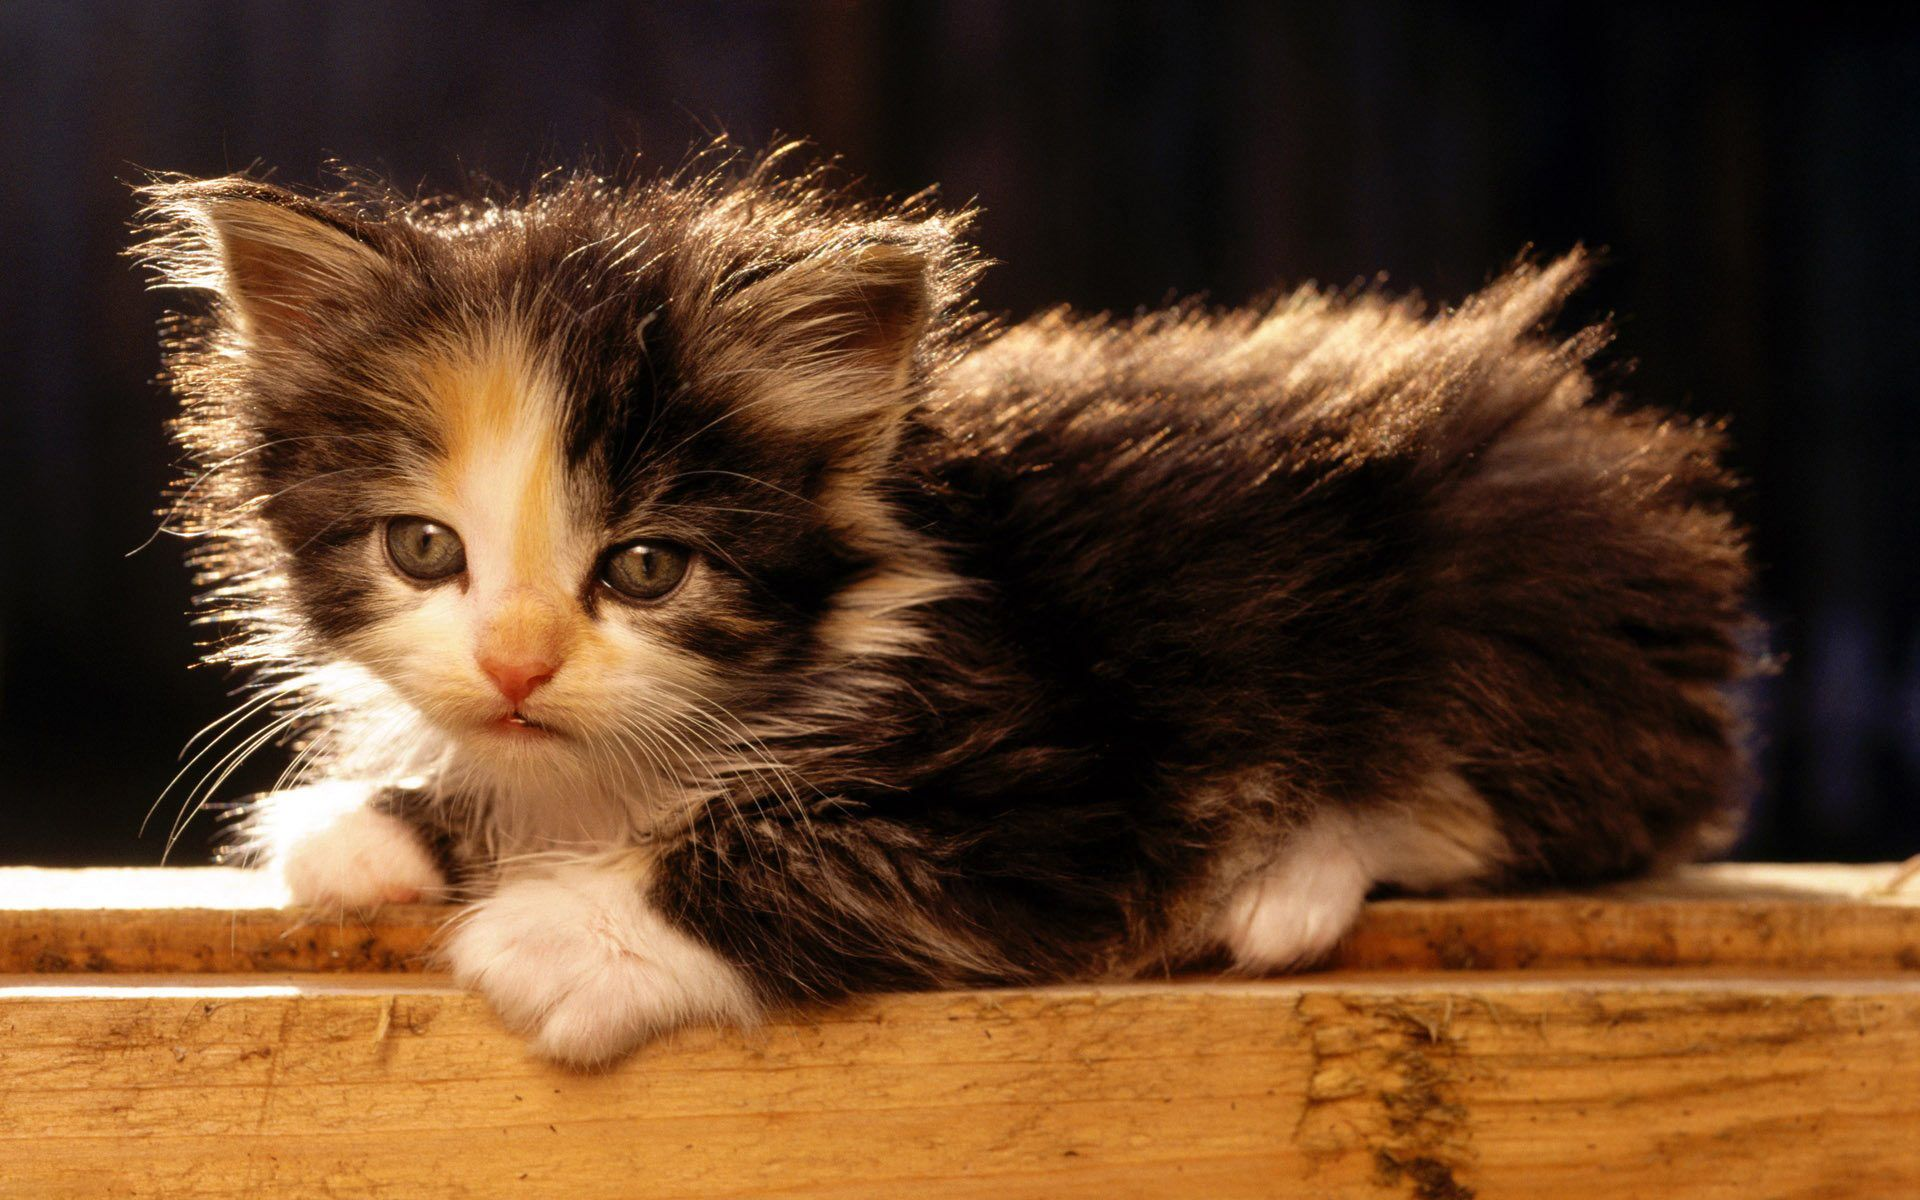 American Bobtail Kitten The American Bobtail Cat Is An Uncommon Breed Of Domestic Cat Which Was Developed Kittens Cutest American Bobtail Cat Fluffy Kittens